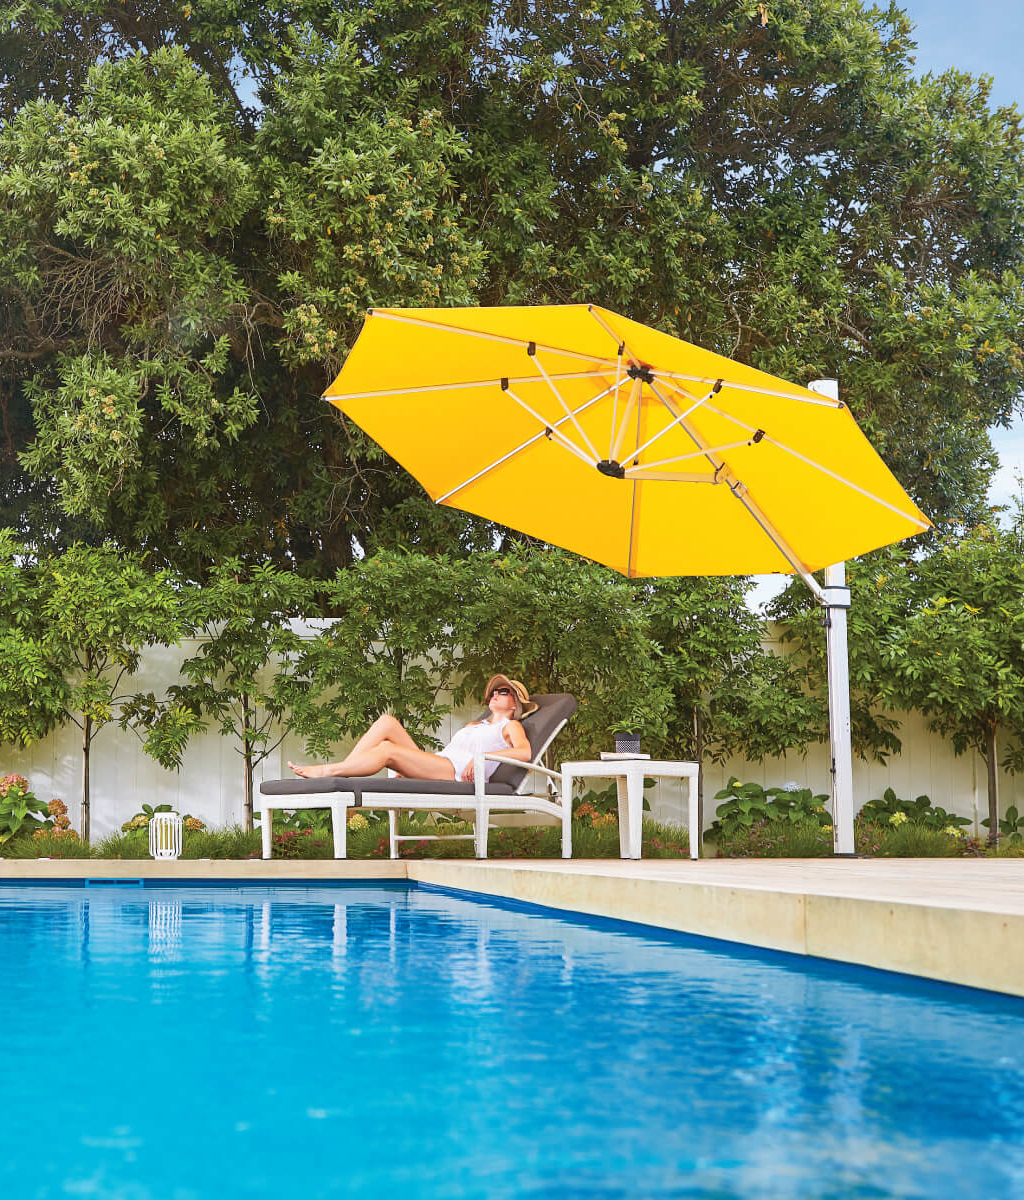 Cantilever Umbrella for Auckland pool